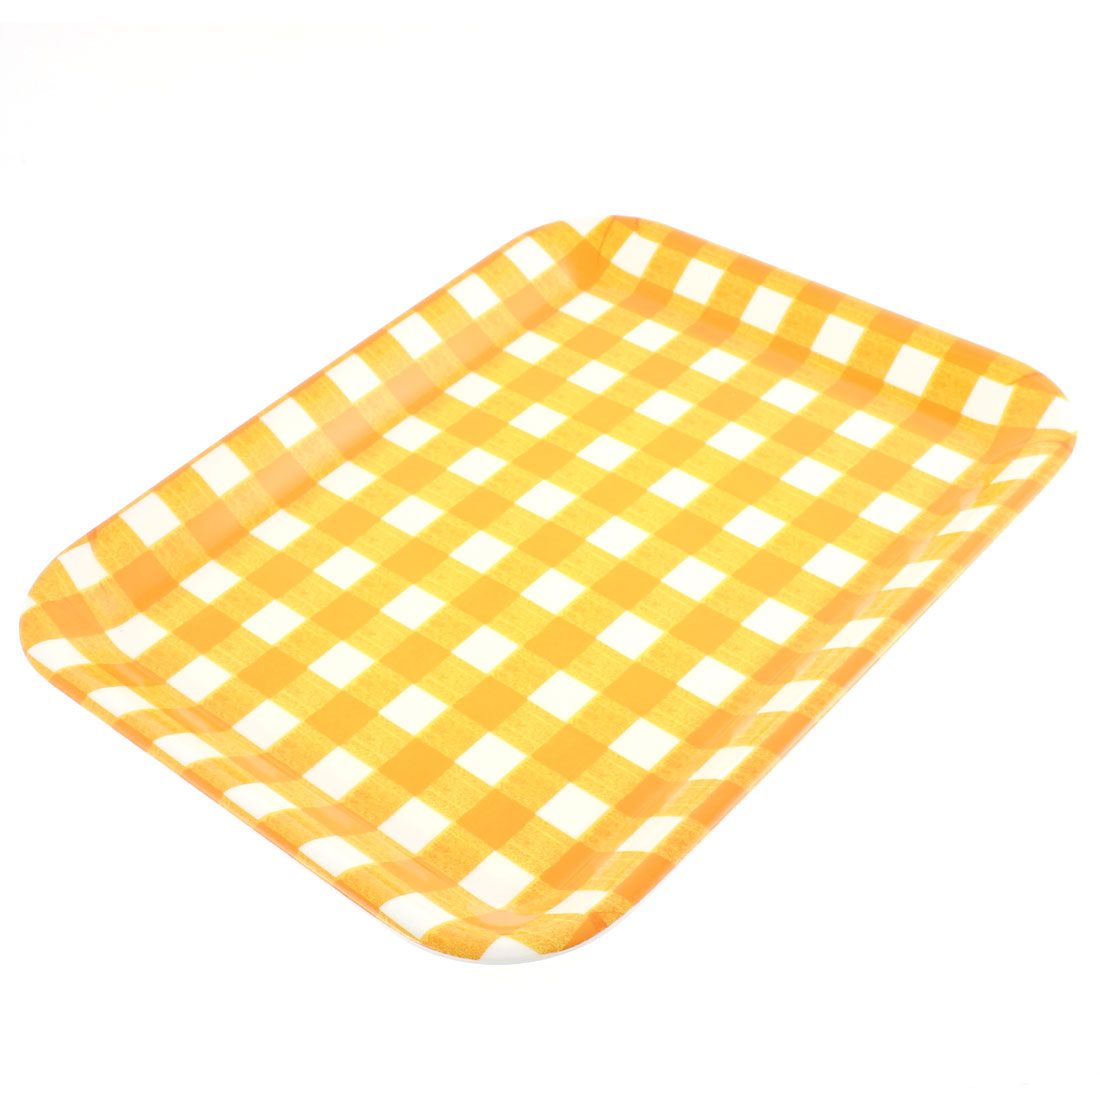 "Hotel Restaurant Rectangle Shaped Fast Food Cake Serving Tray 13"" Length"